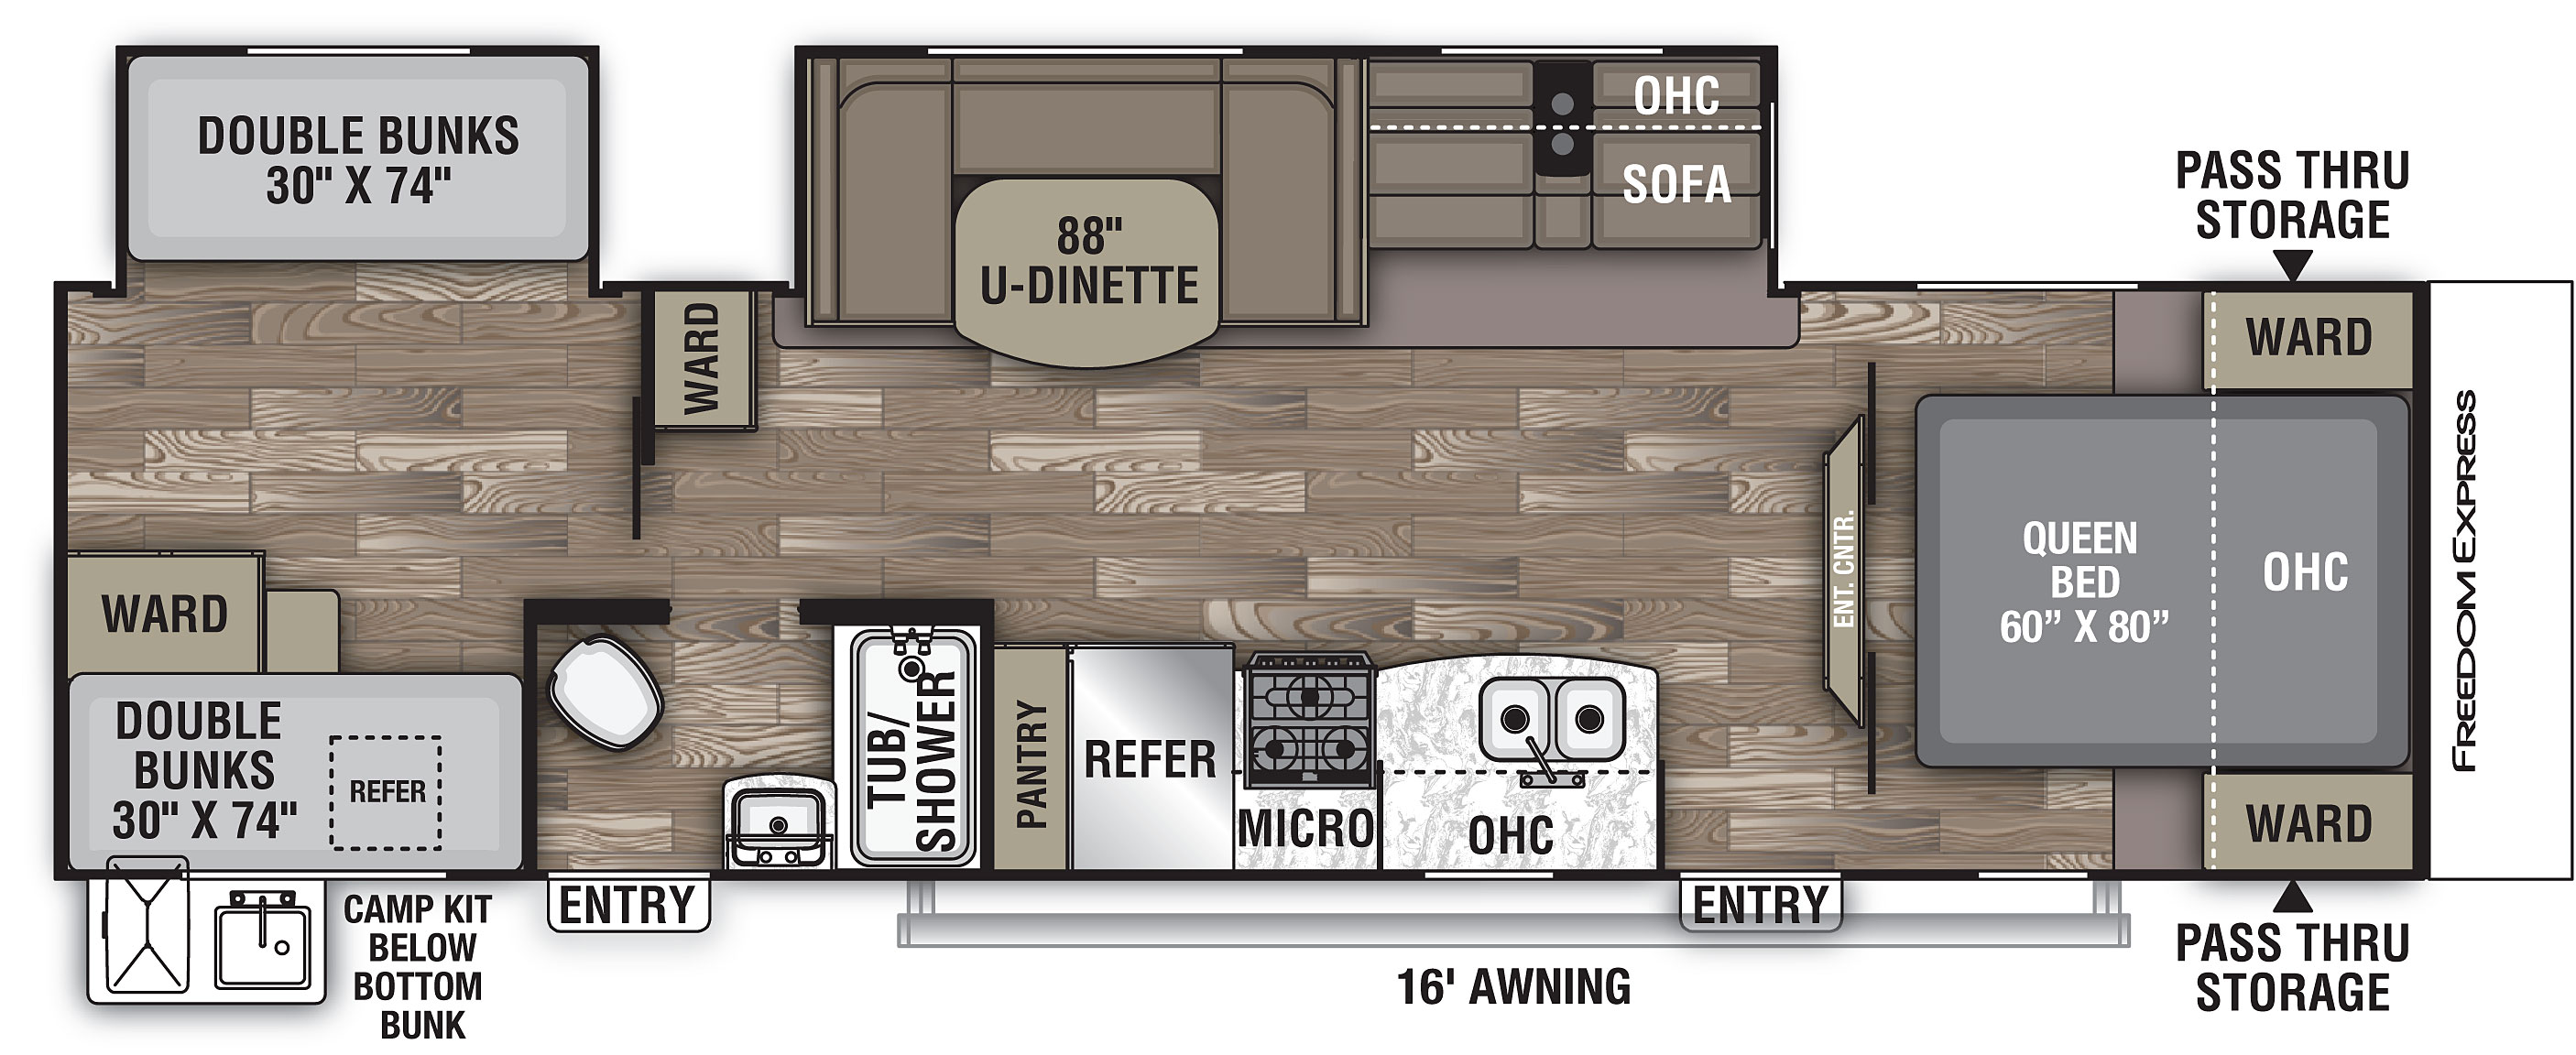 I am a 16 year old who loves math,science,and electronics(and programming).i have to design my new room(a 14'x20' empty space right now) and am out of ideas.i tried searching the site for some cool ideas,but my searching skills are pretty b. Best 2 Bedroom Travel Trailer Floor Plans